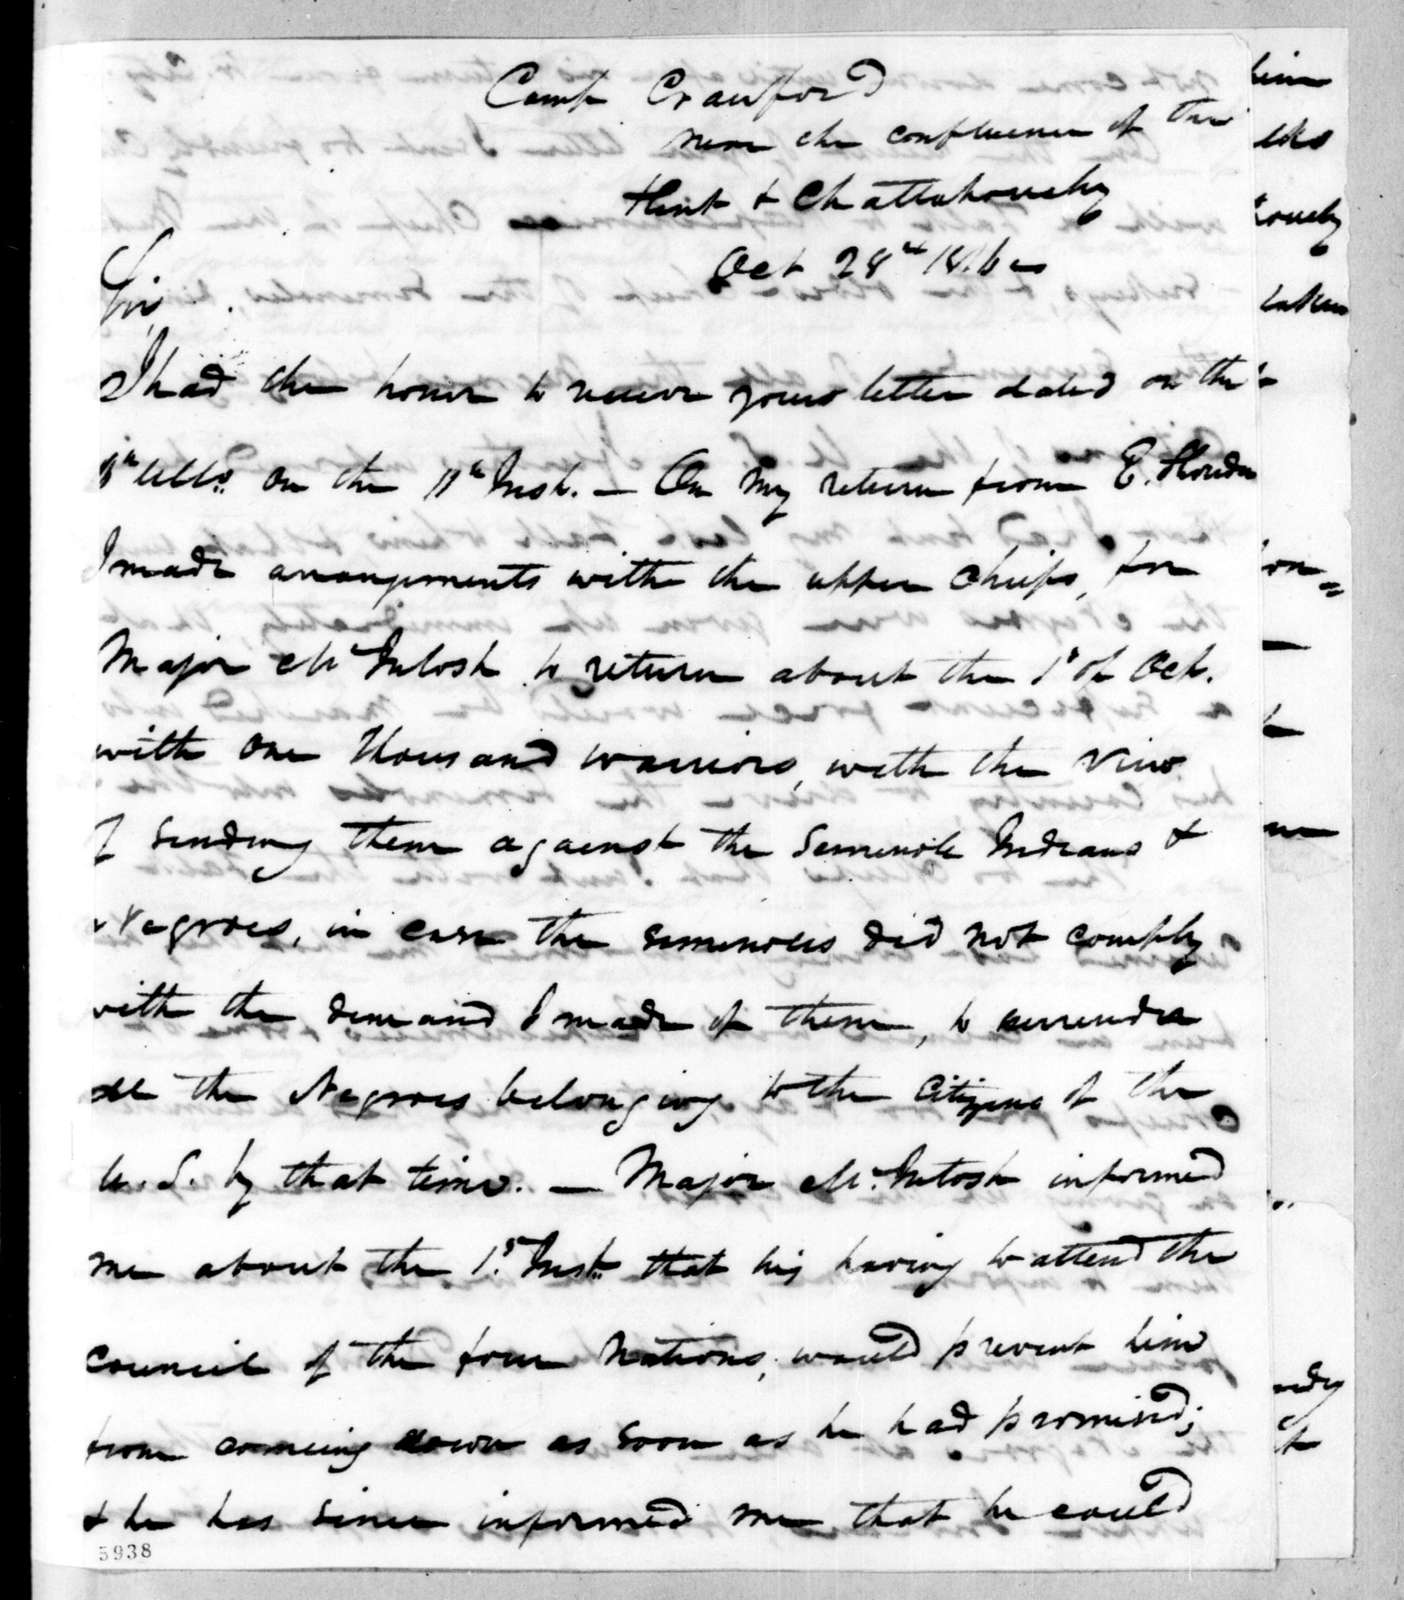 Duncan Lamont Clinch to Andrew Jackson, October 28, 1816